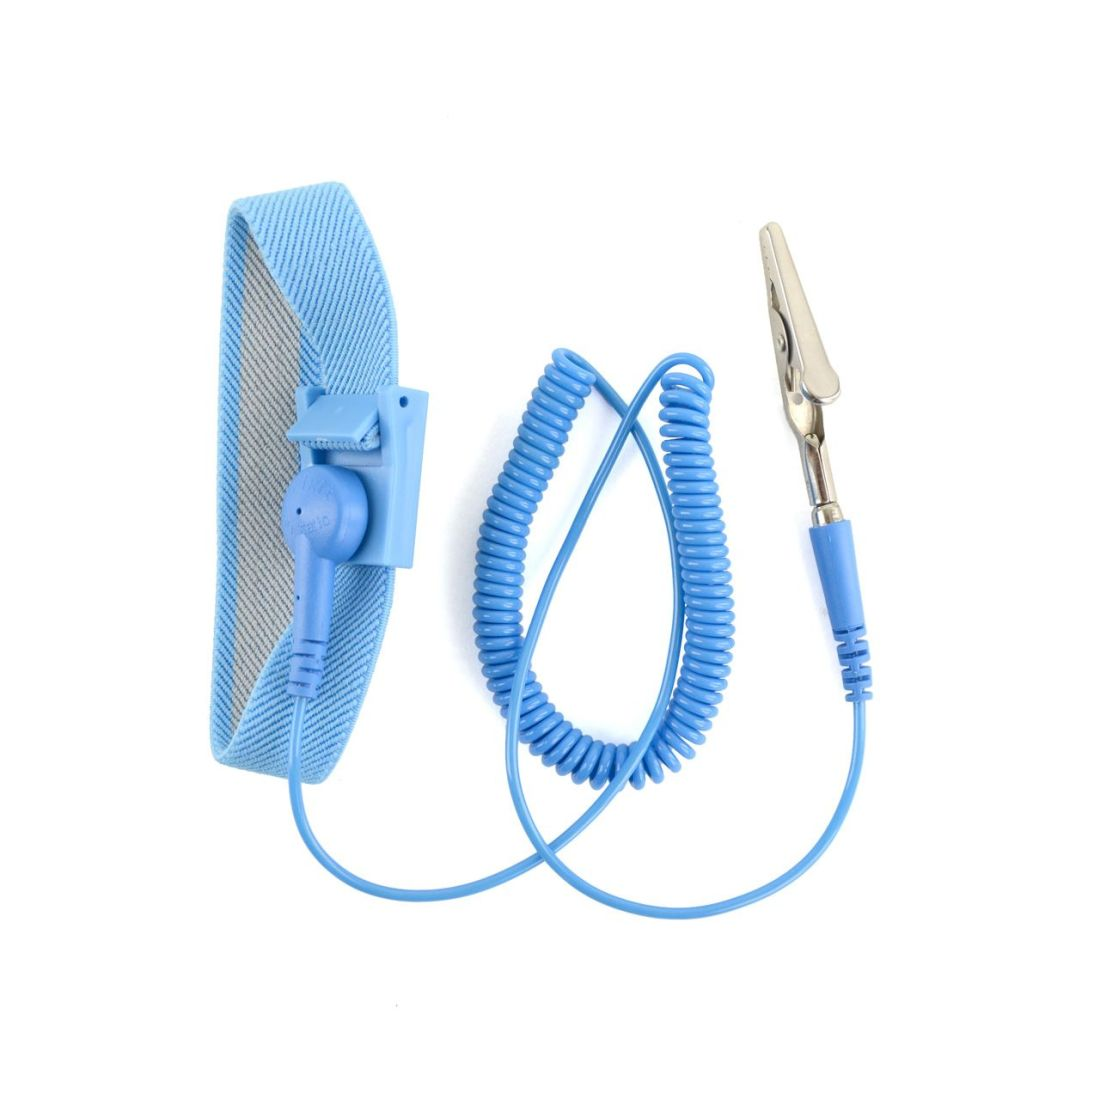 Antistatic wrist strap personalized items tool